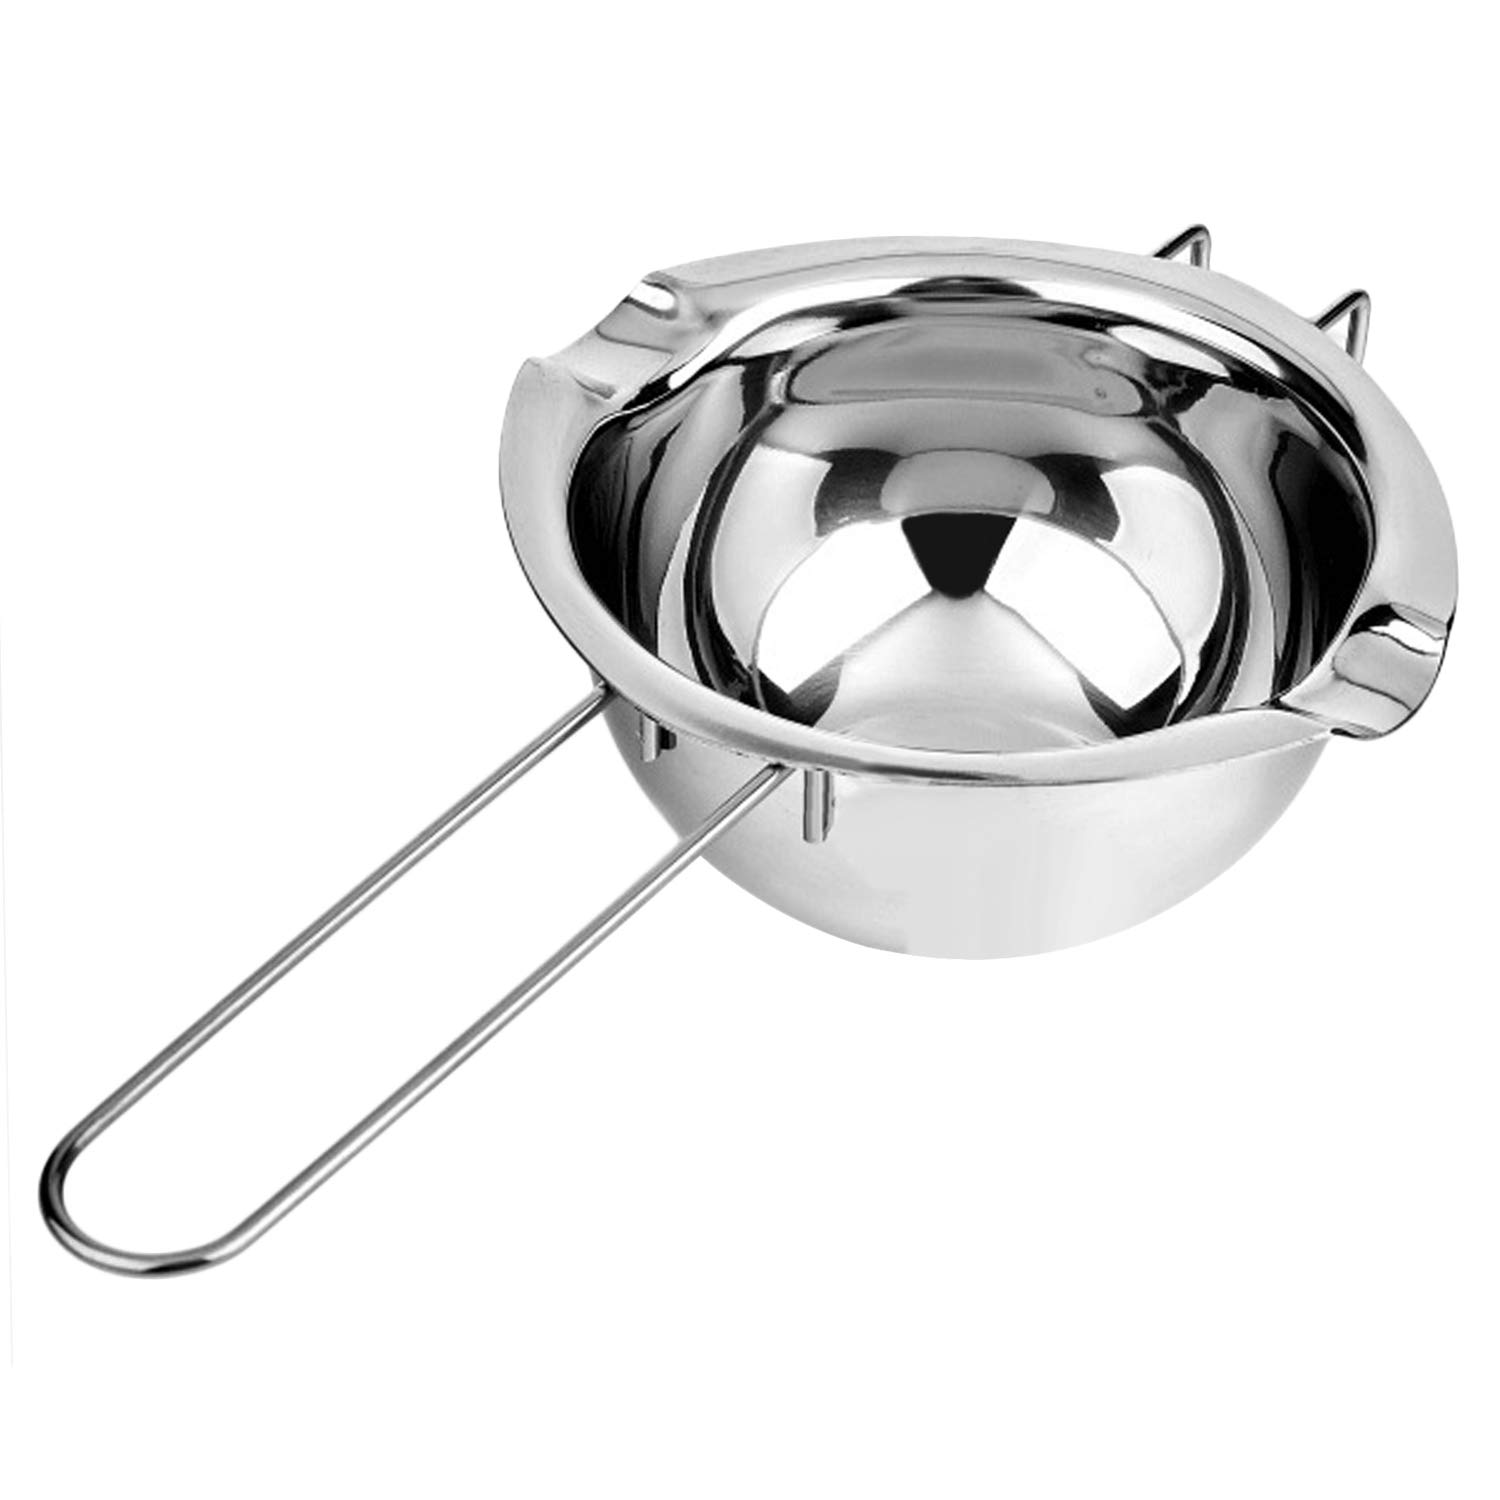 Stainless Steel Universal Double Boiler Melting Pot for Milk Utter Chocolate Cheese Caramel Baking Cooking Tools Migavan